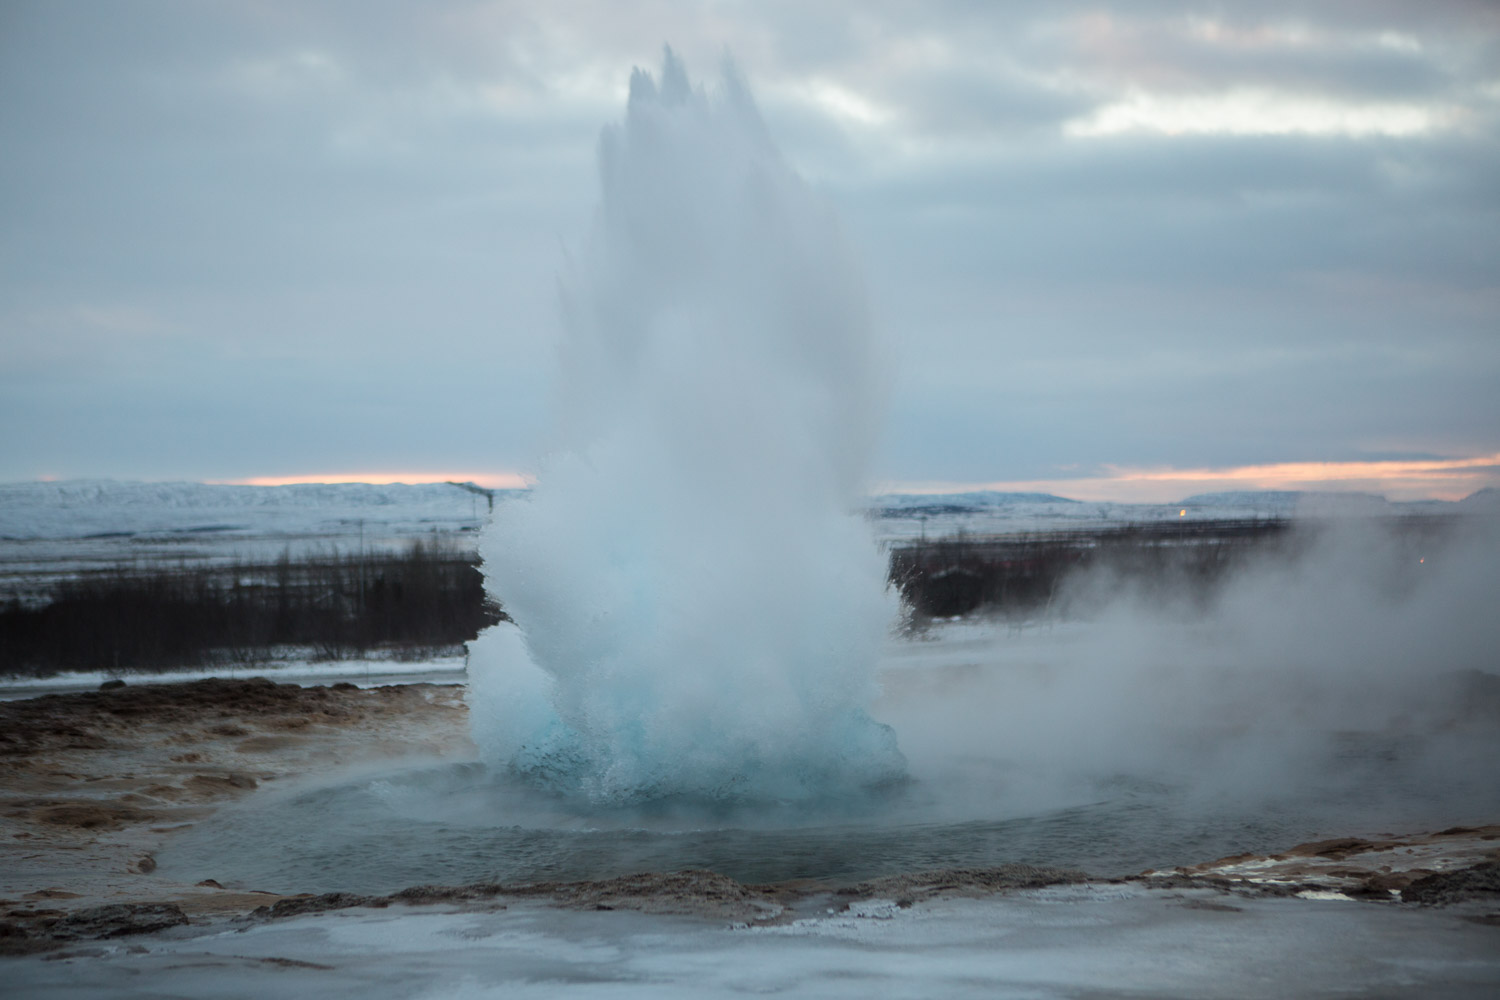 Golden Circle - 5-day Iceland itinerary